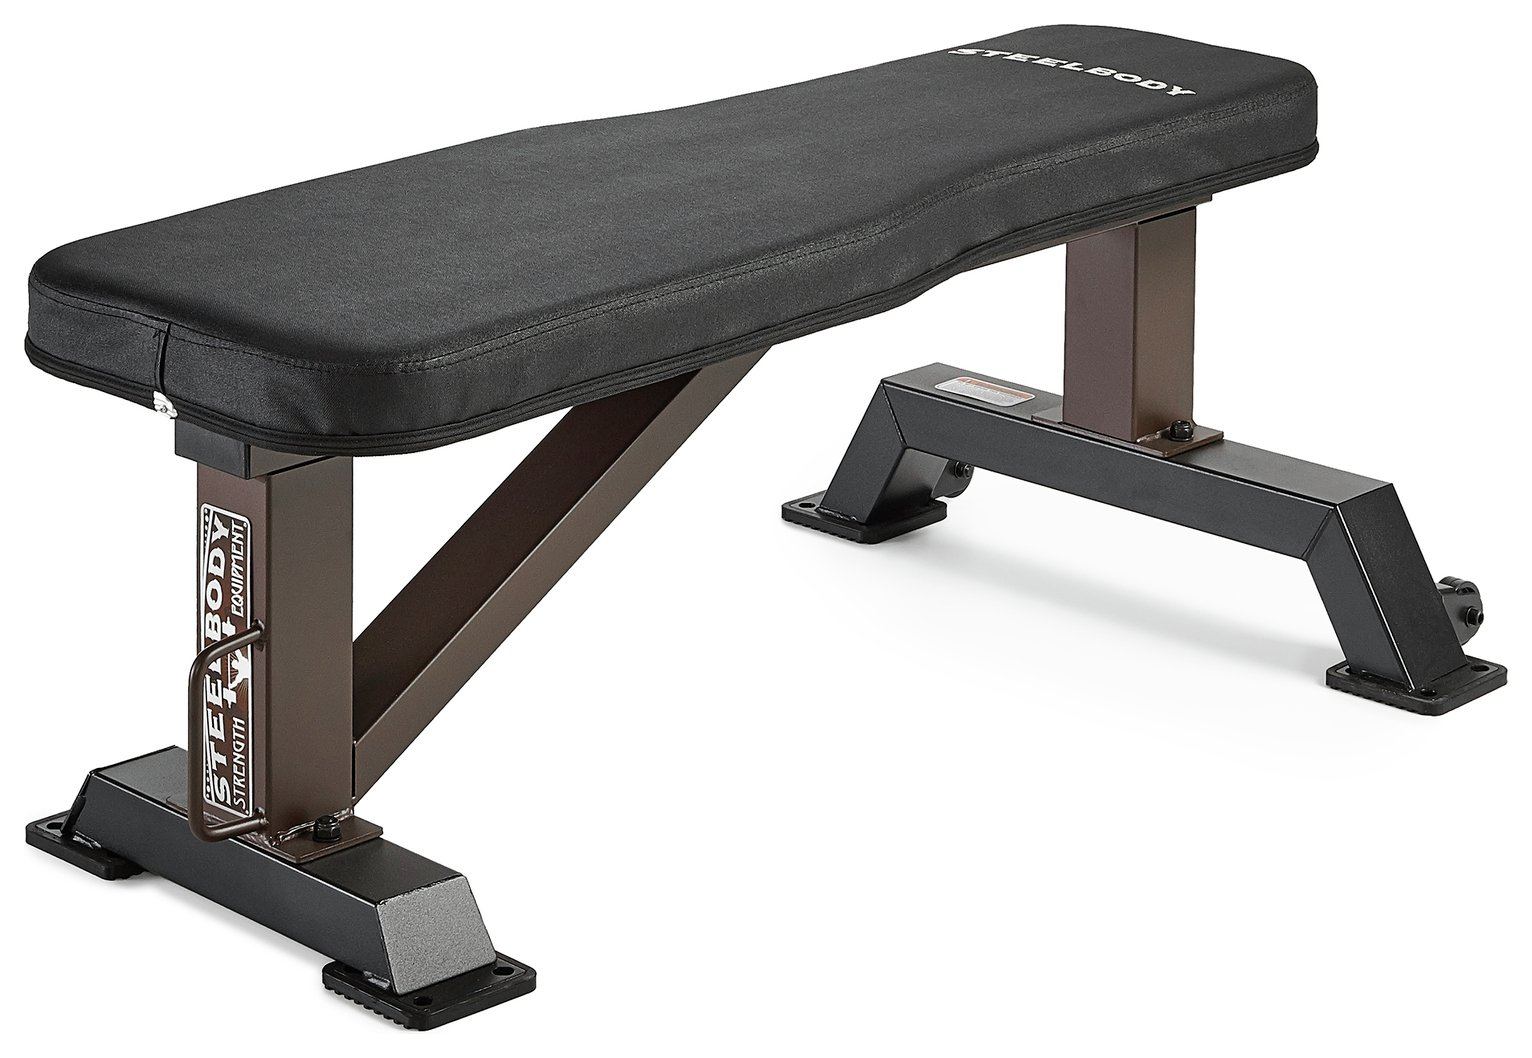 Steelbody by Marcy Flat Weight Bench